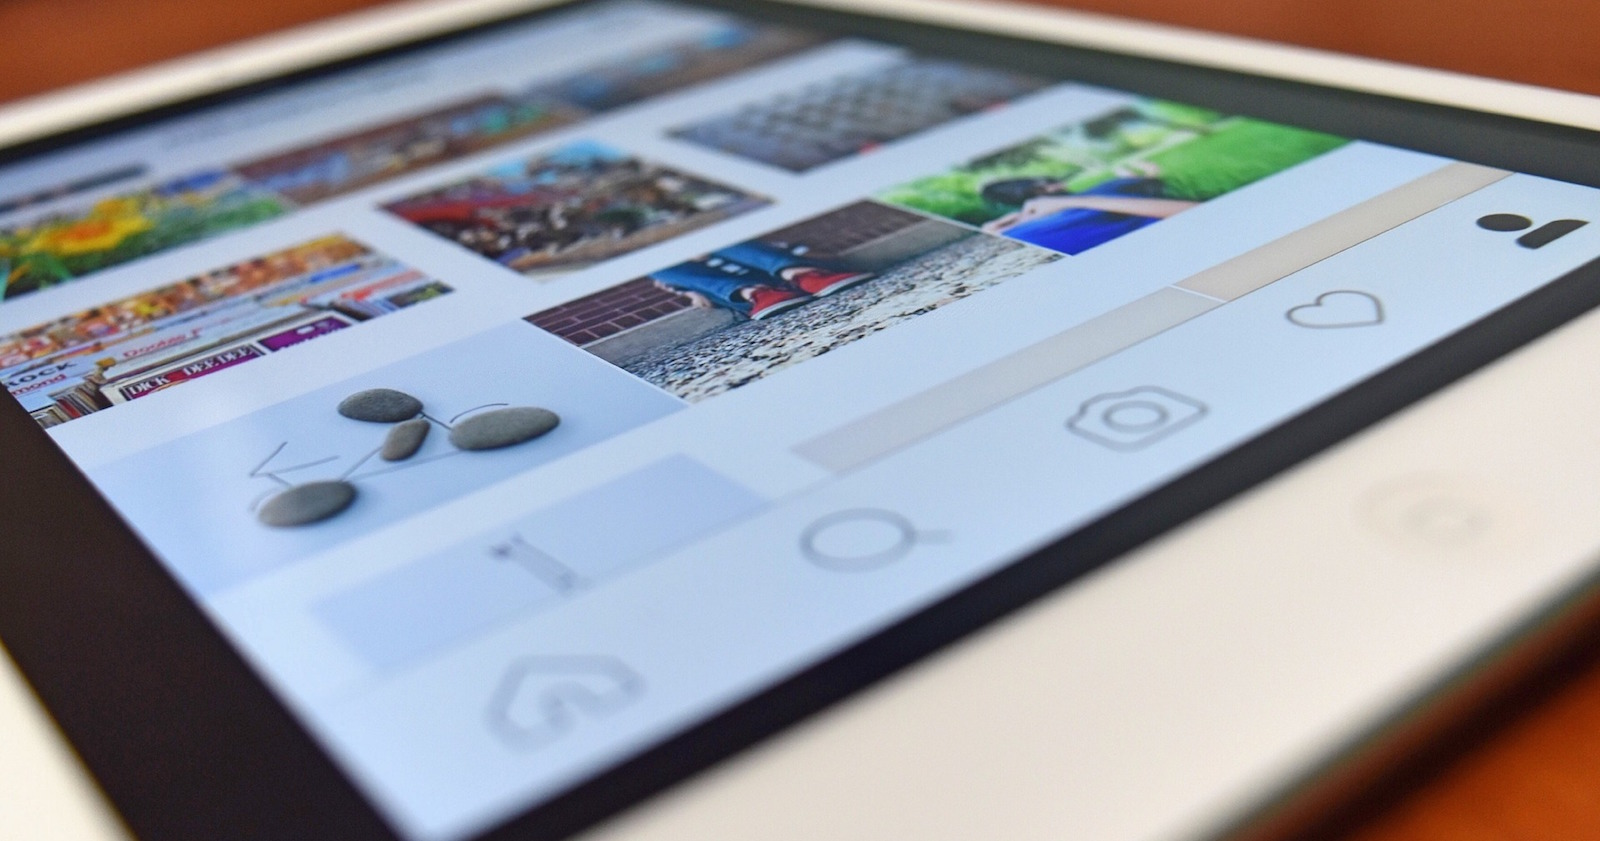 4 Instagram Marketing Ideas for Higher Engagement & More Followers by @nathanhchan